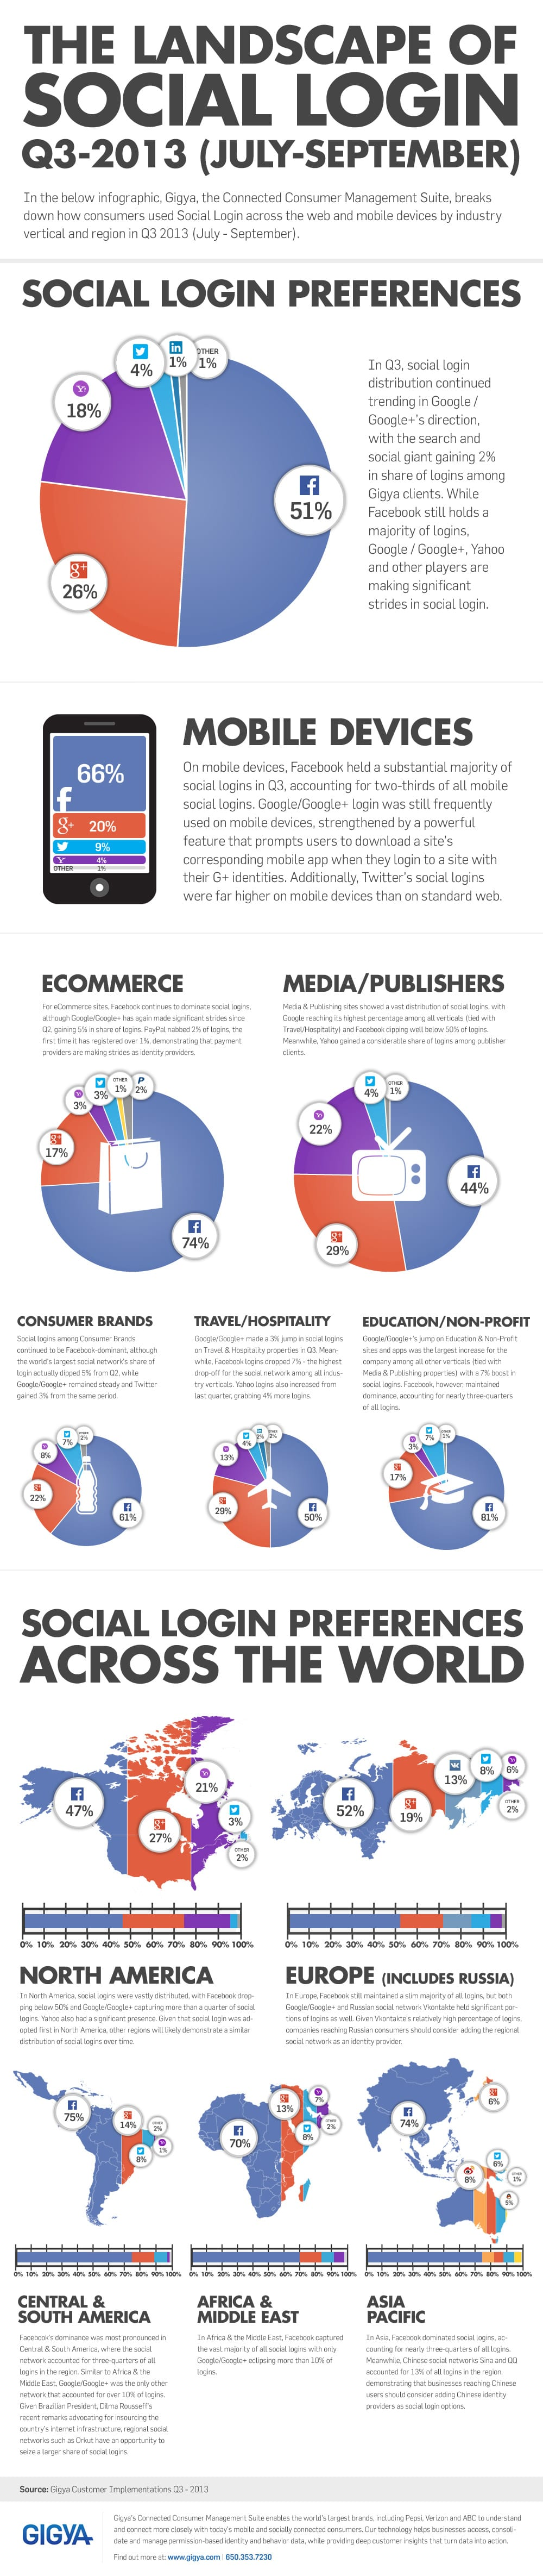 Social Sign-on : the implications for Ecommerce sites [Infographic] - Smart Insights Digital Marketing Advice